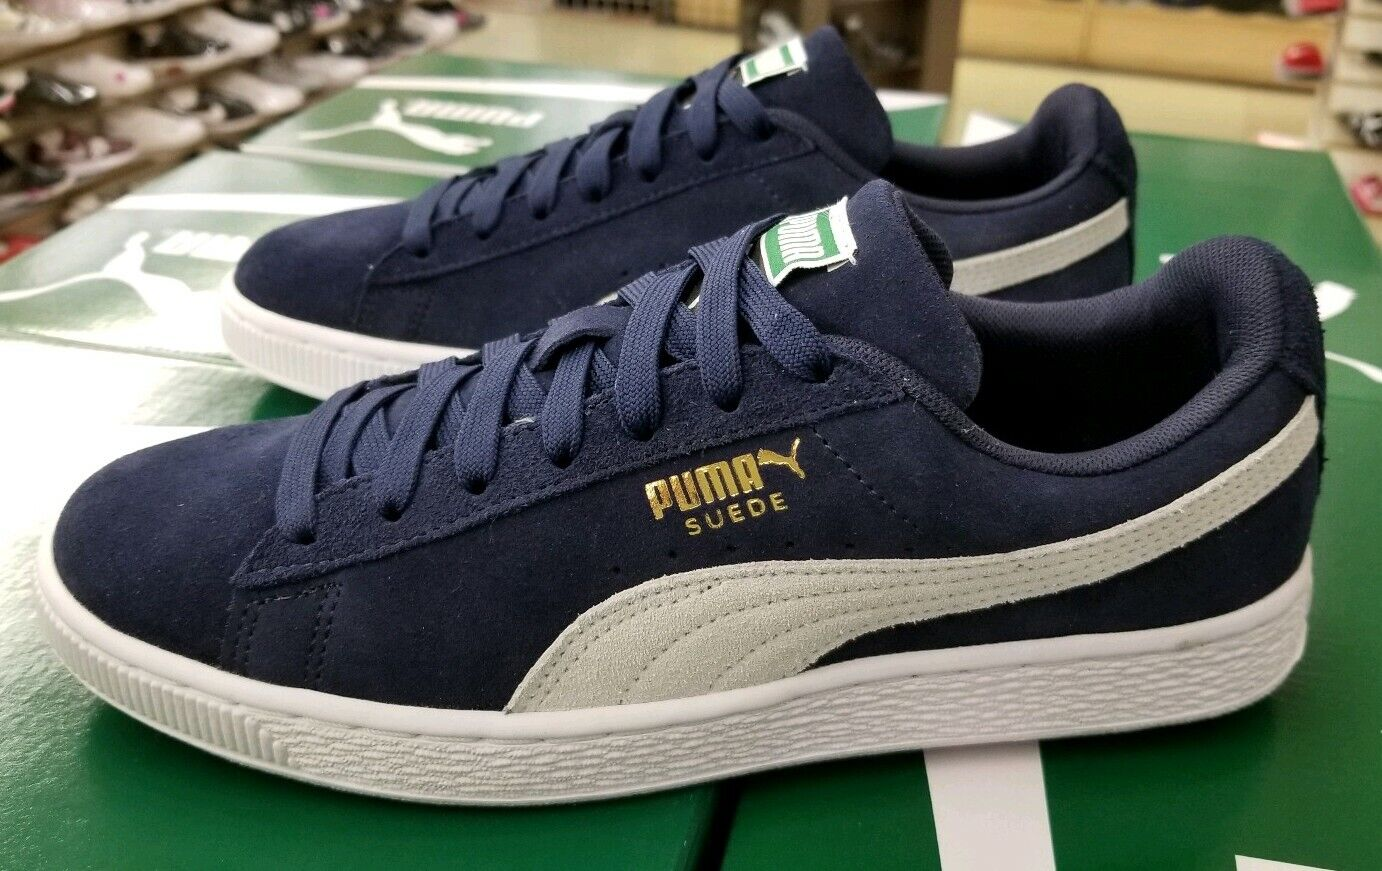 Size 8.5 - PUMA Suede Classic Peacoat 2019 for sale online | eBay